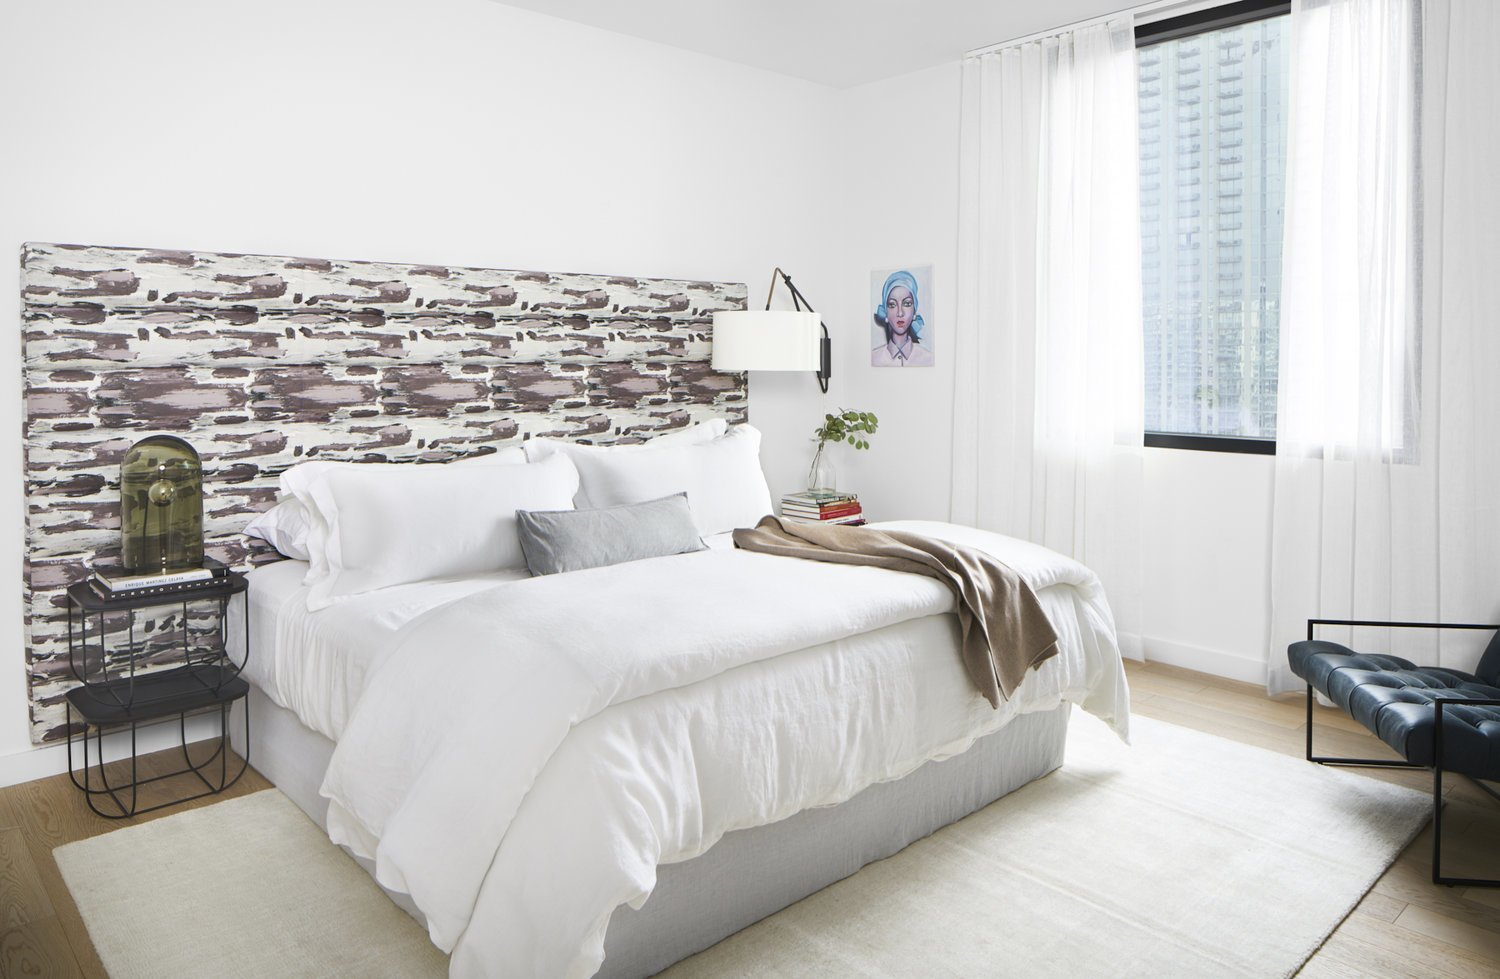 Bedroom, Rug Floor, Light Hardwood Floor, Lamps, Bed, Chair, Table Lighting, and Night Stands The guest bedroom has a wall-mounted headboard, metal night stand and white bedding with a camel throw blanket, accented with a dark teal armchair.  Seaholm Custom Condo by SLIC Design